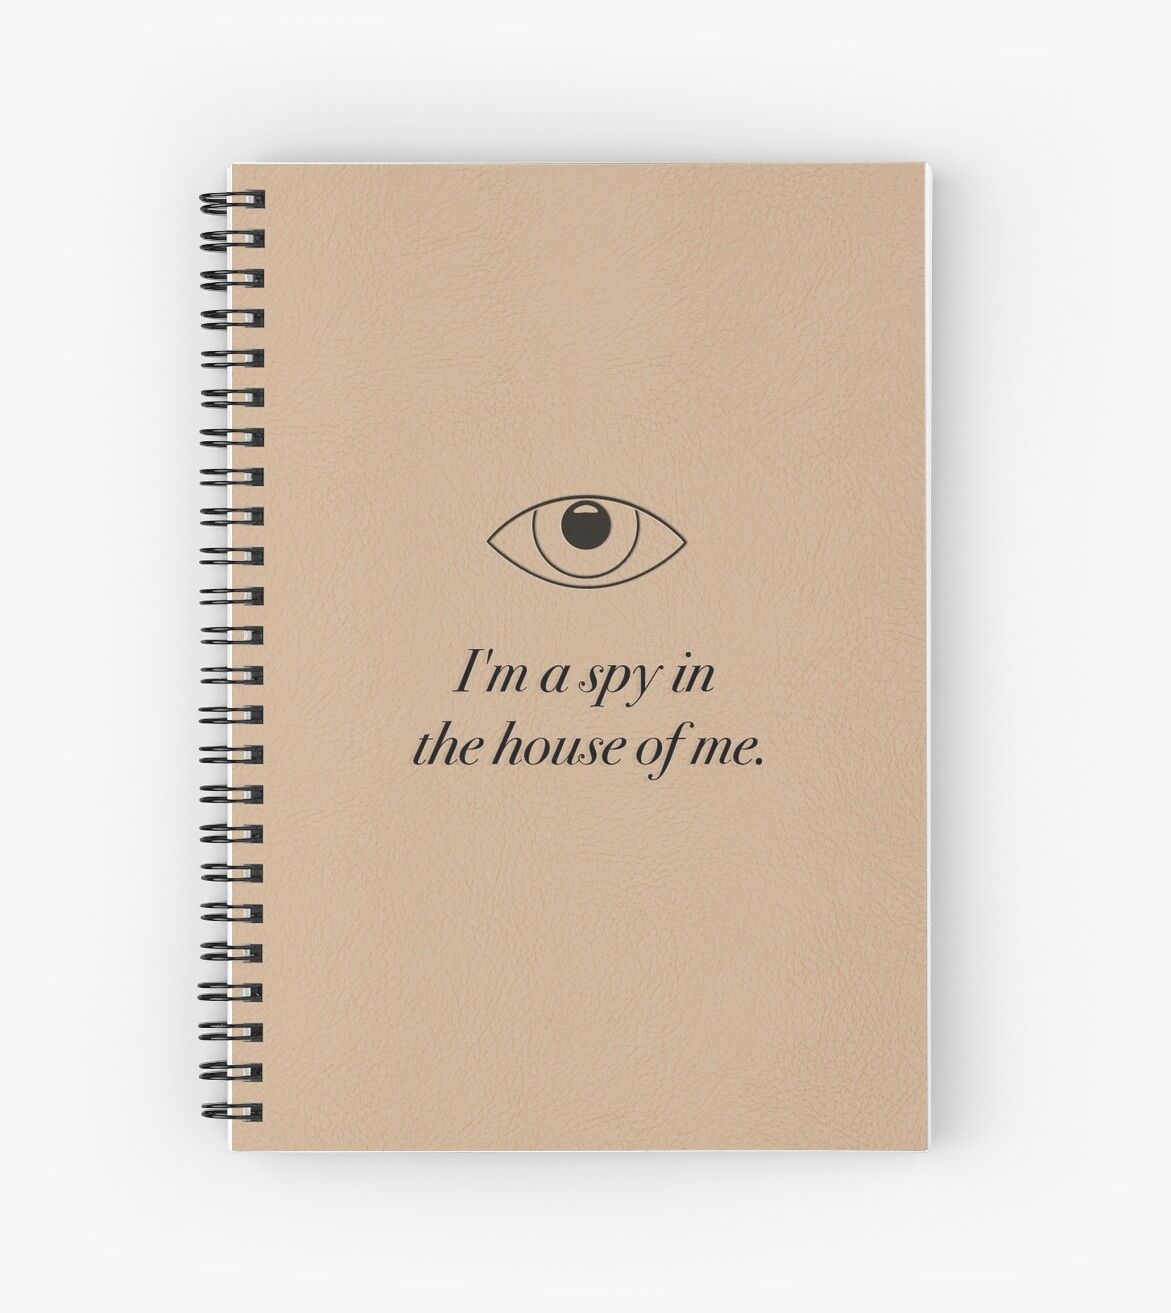 Spy in the House of Me - Carrie Fisher Memorial Journal by carriediaries